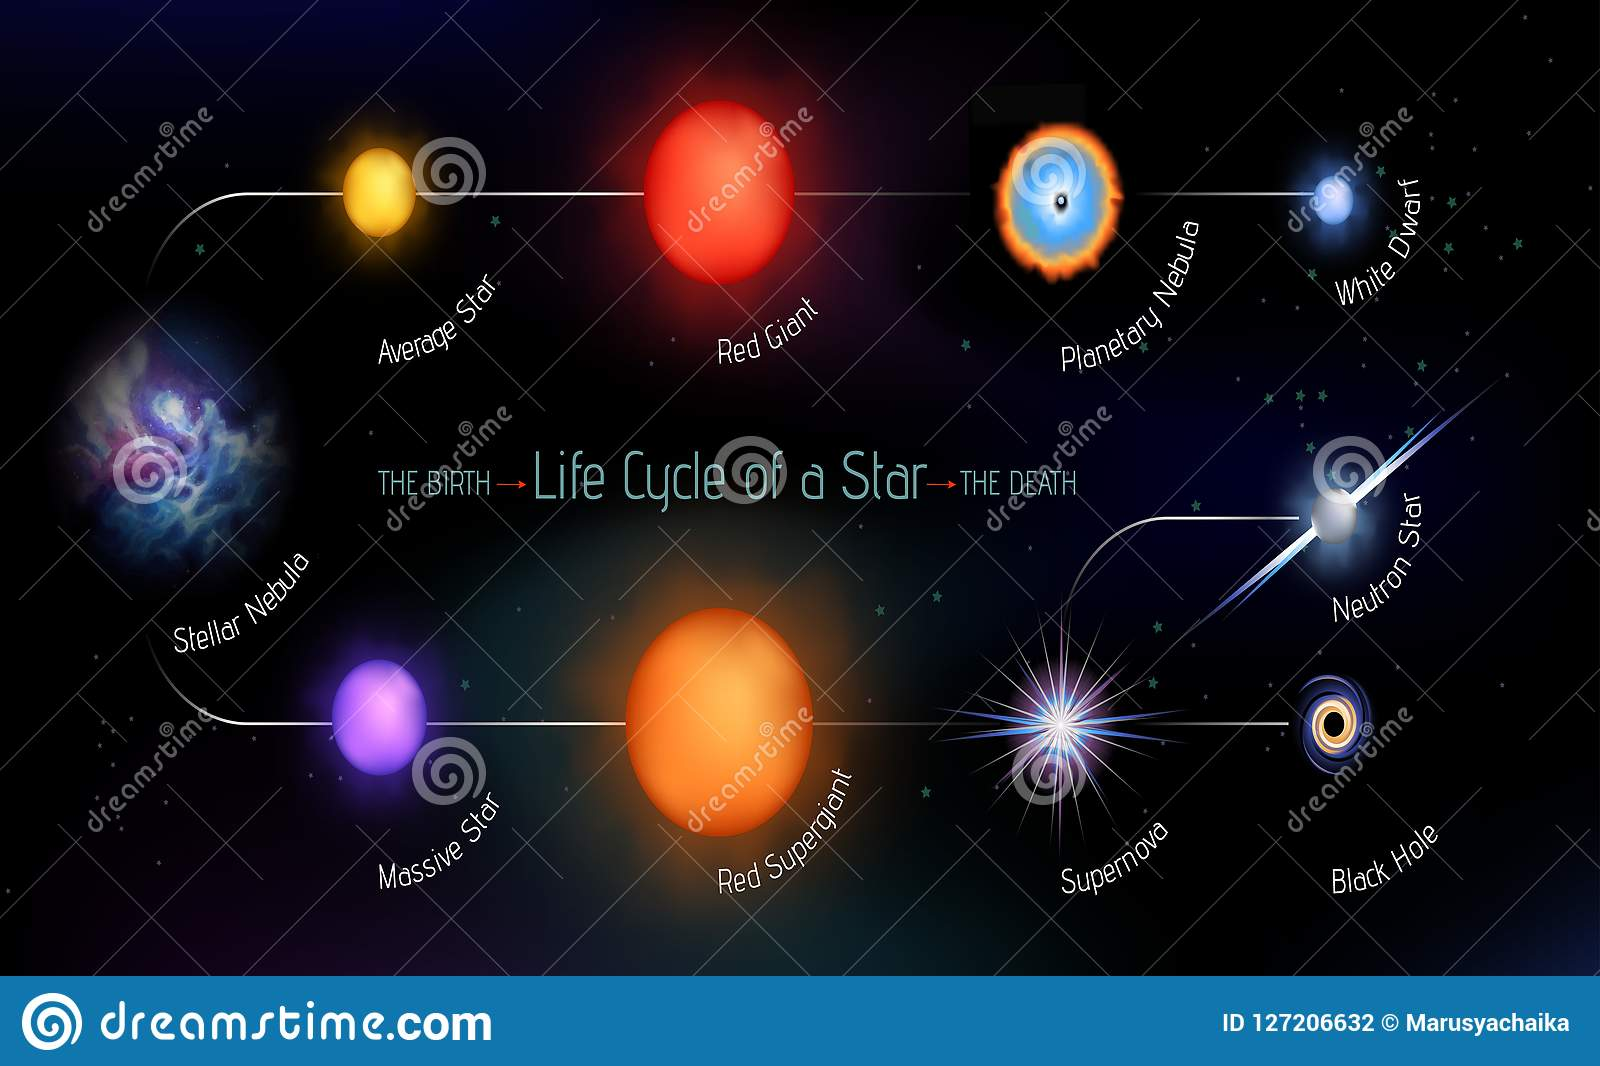 life cycle of a star stock vector illustration of motion 127206632life cycle of a star